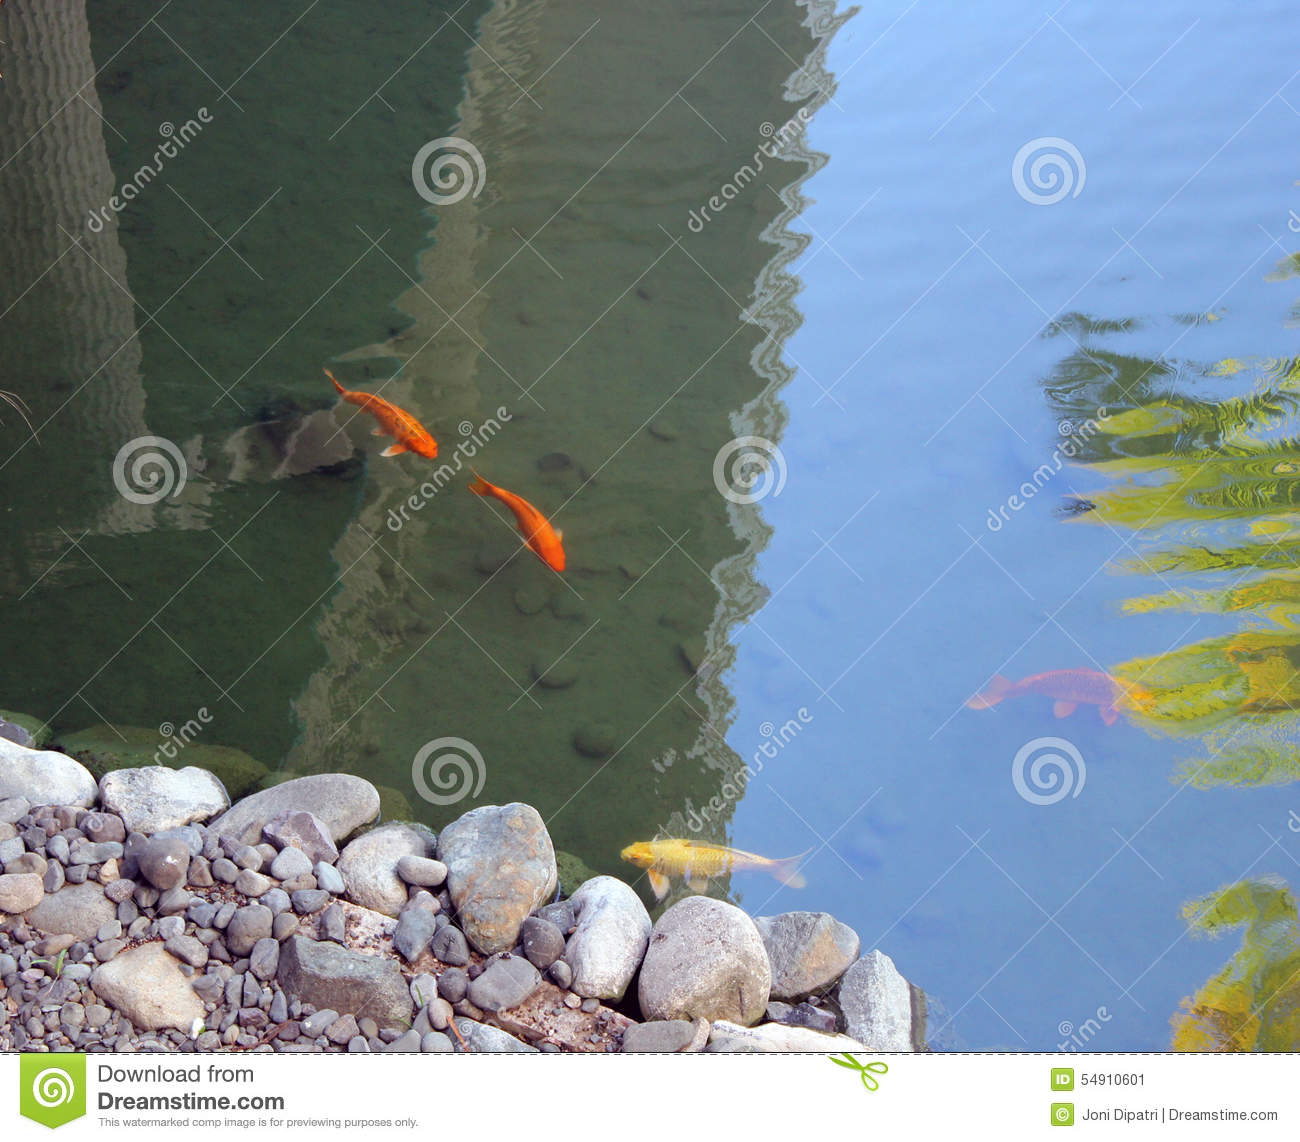 Ornamental koi fish stock photo image 54910601 for Ornamental fish garden ponds